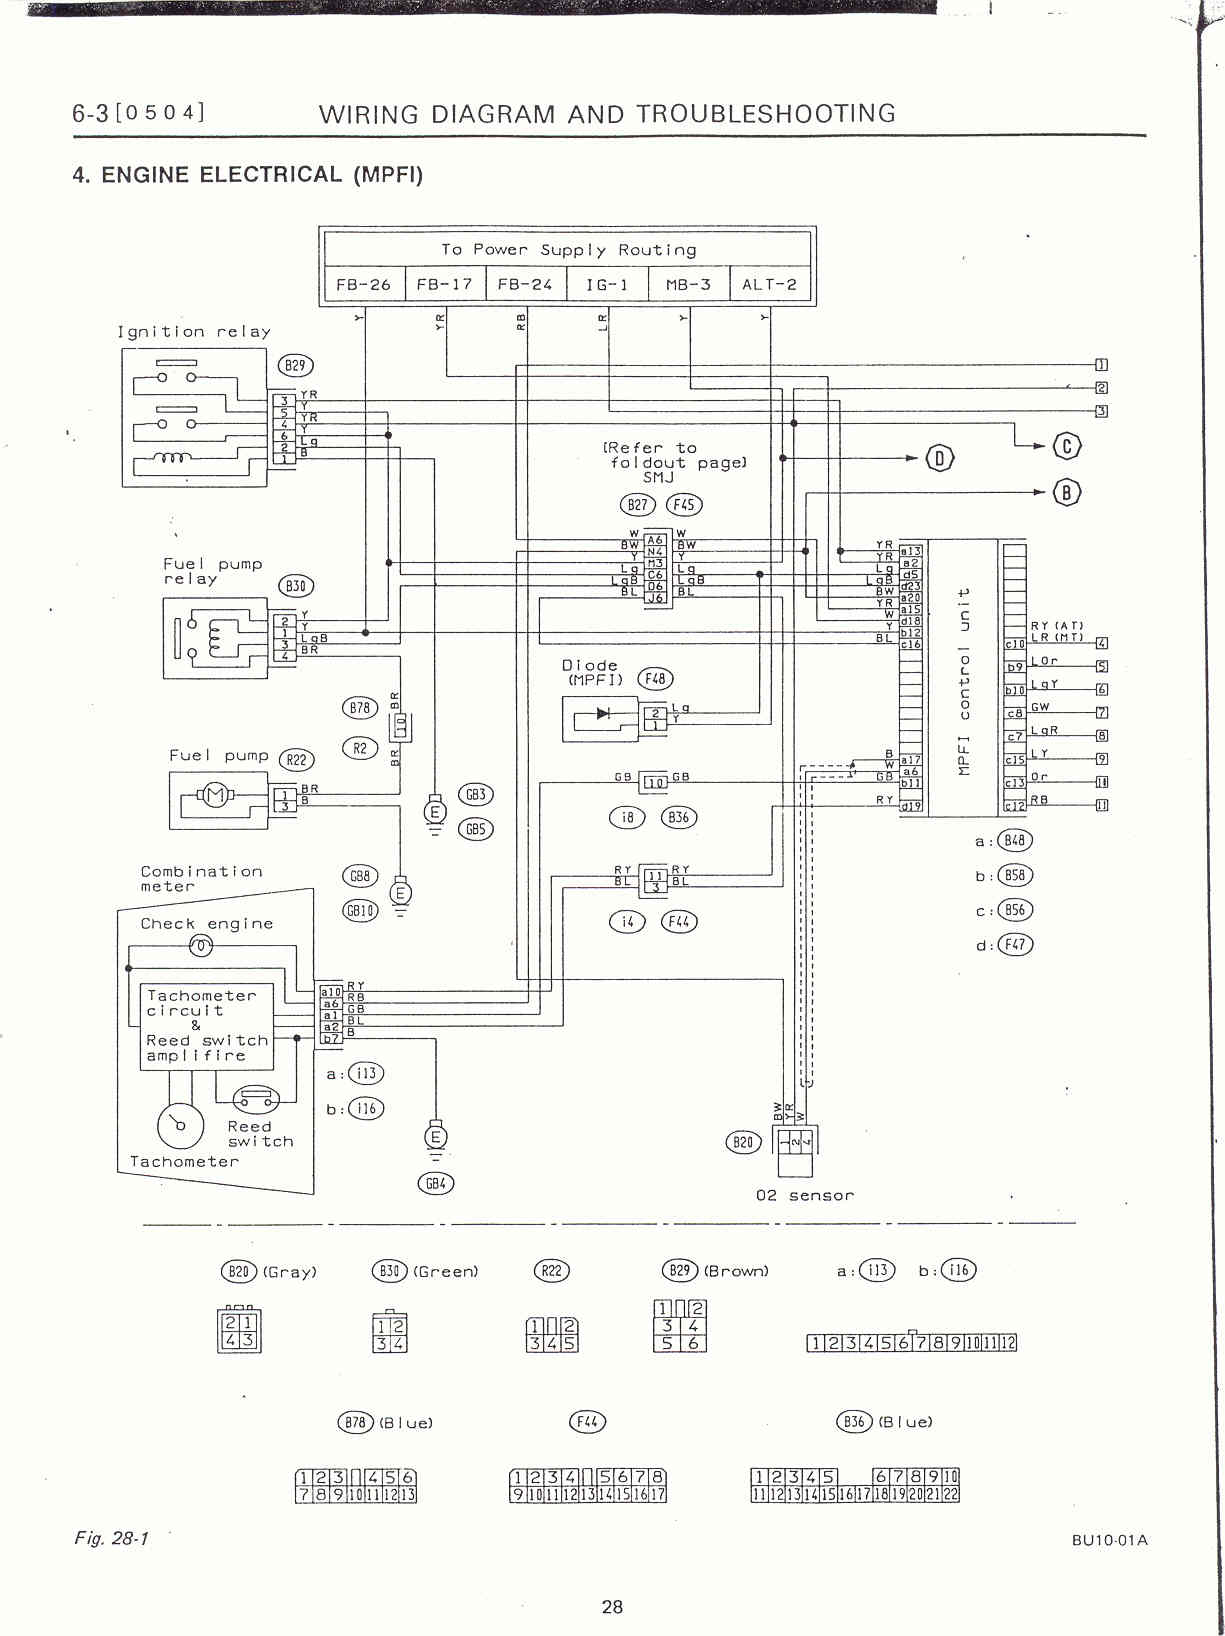 1999 toyota 4runner brake controller wiring diagram alternator ford contour egr valve location free engine